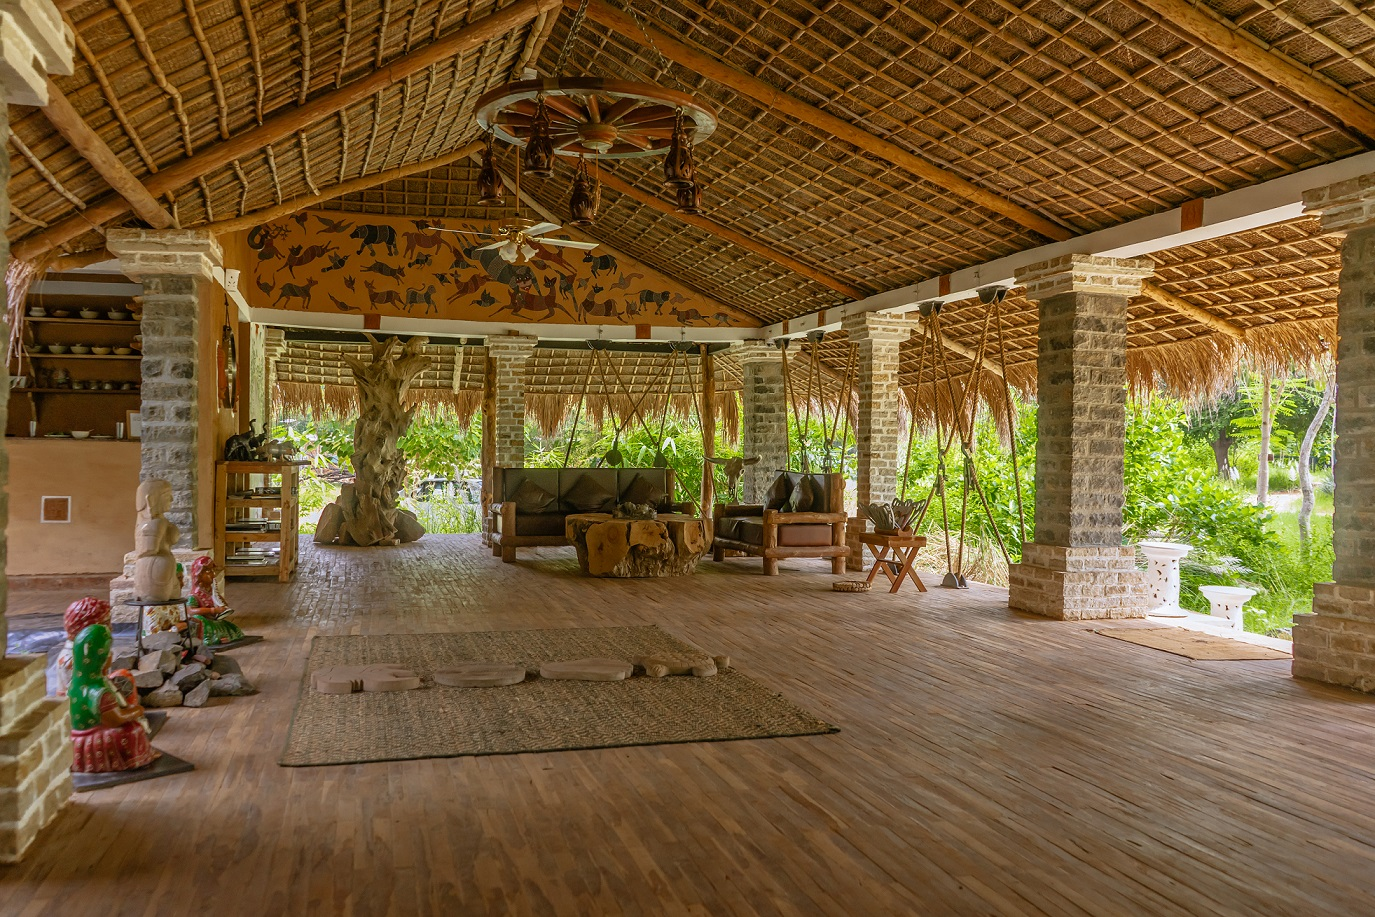 Tendu Leaf Jungle Resort offers you a calming and rejuvenating experience